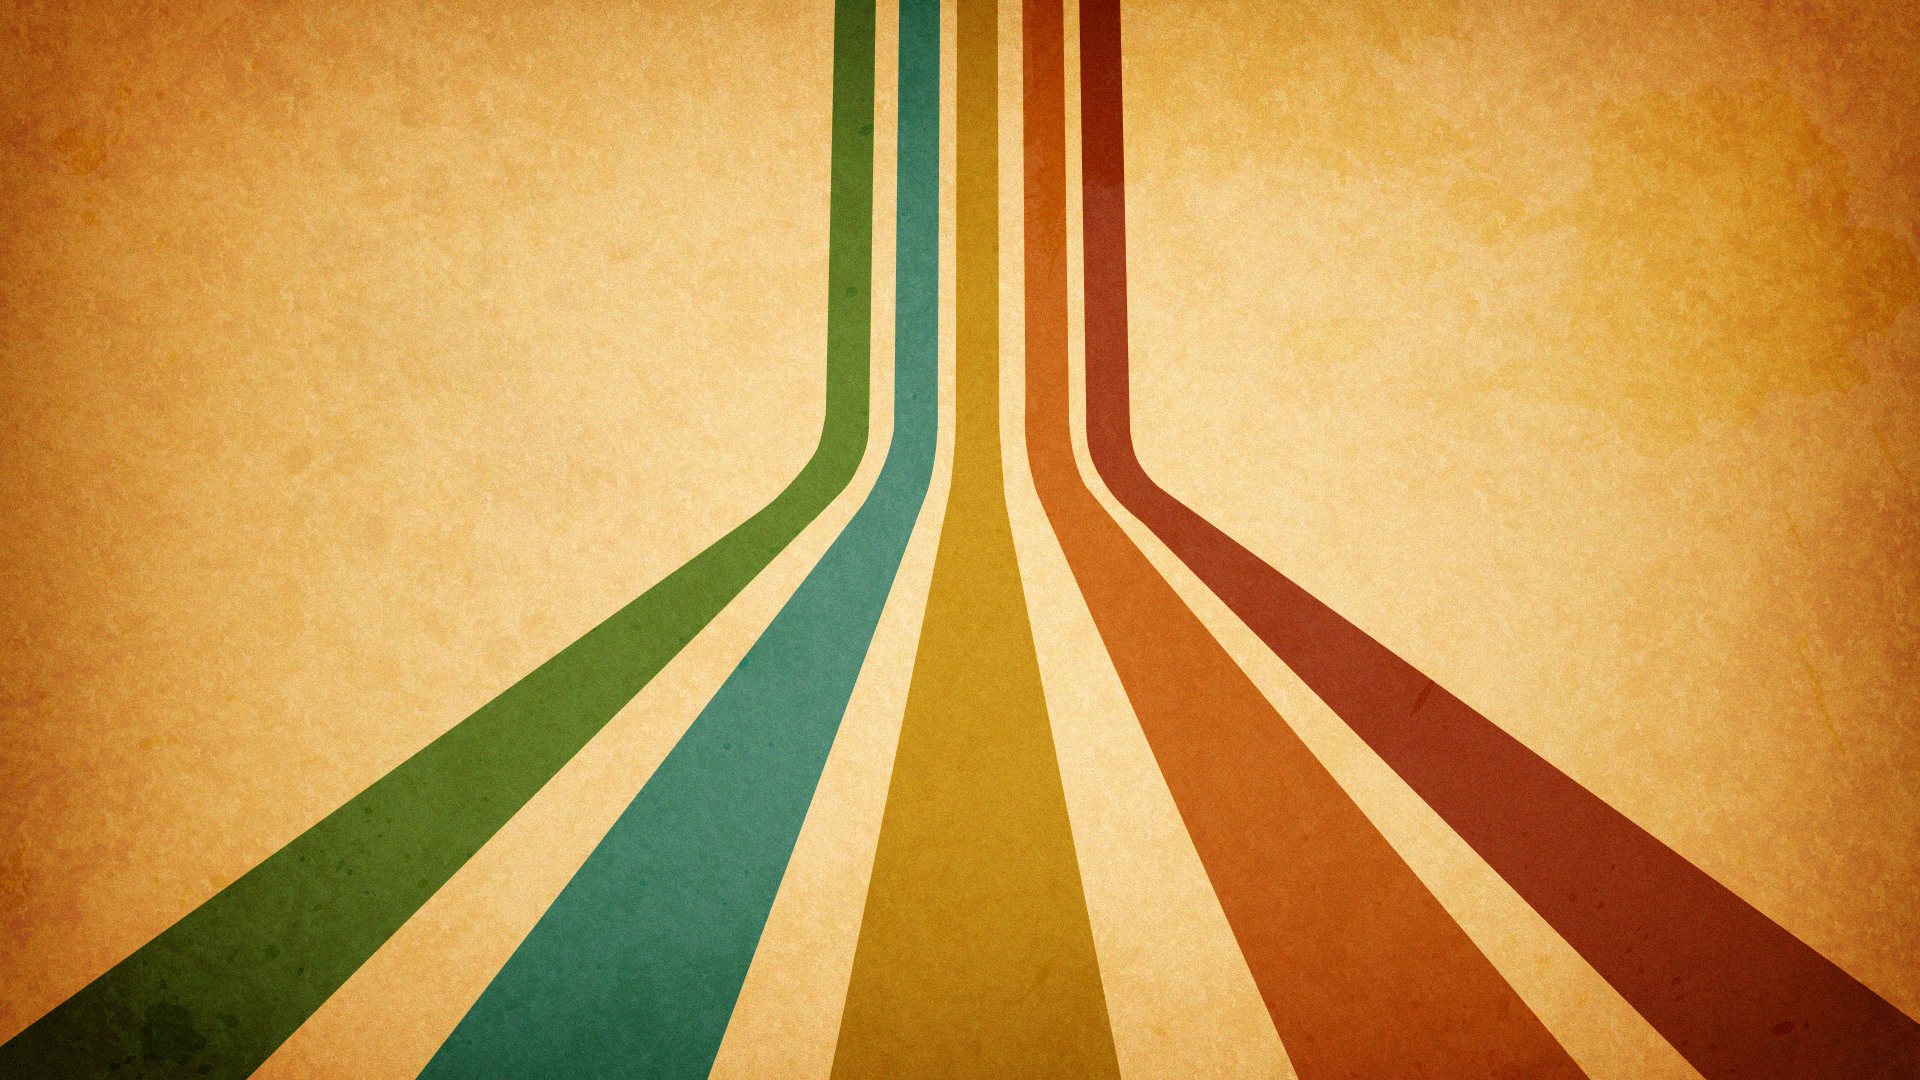 retro colorful background hd - photo #5